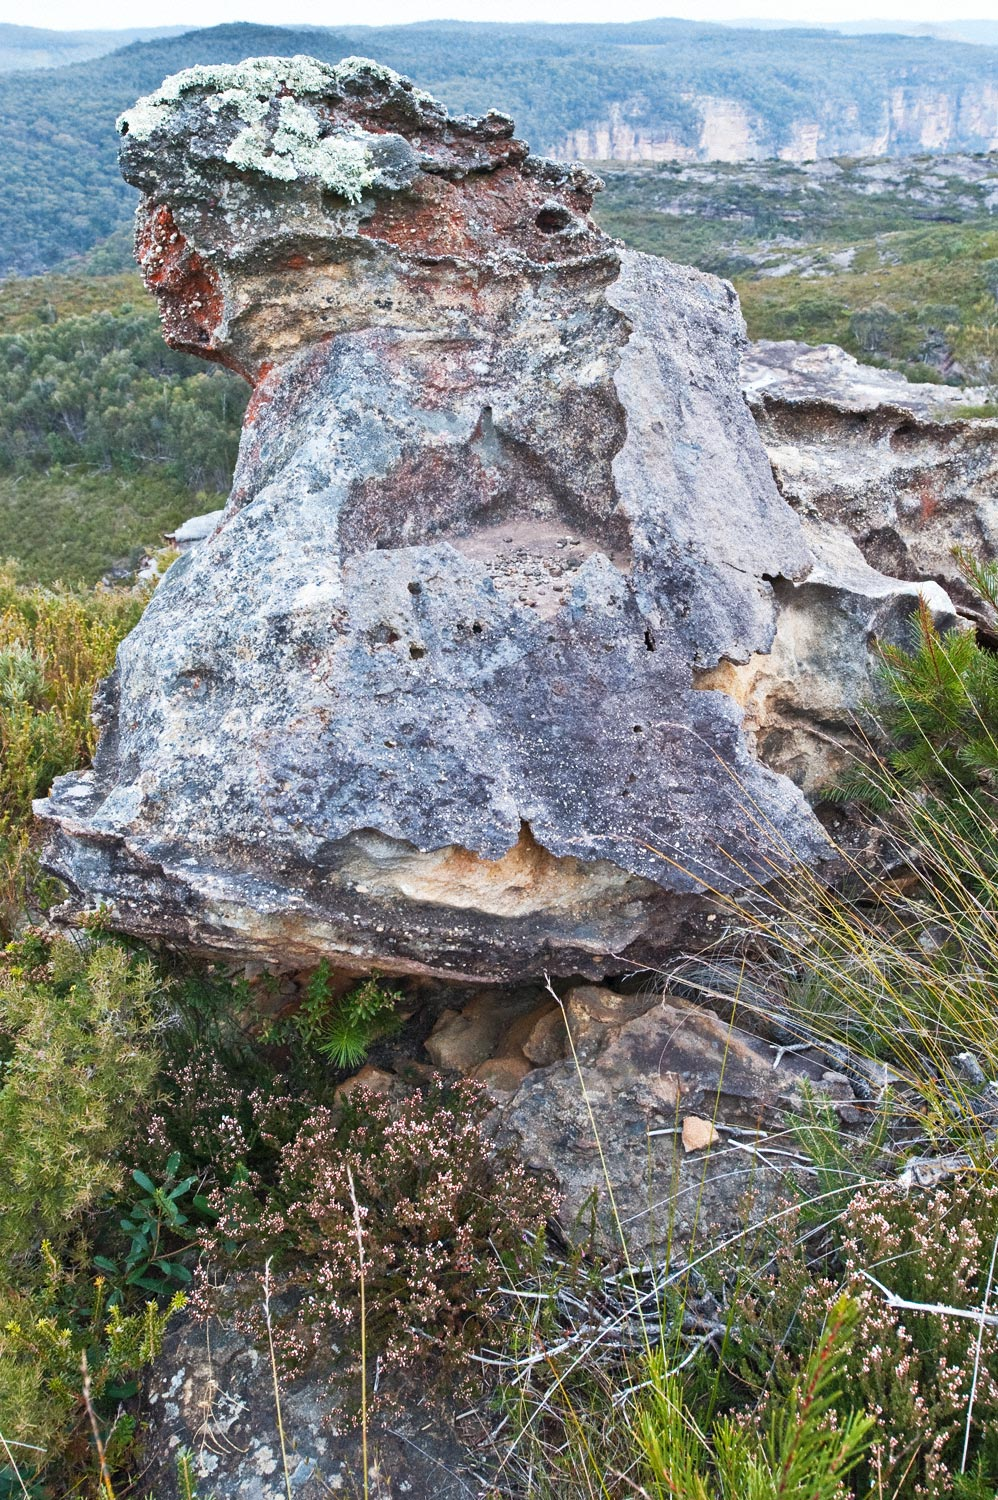 Warren-Hnder-Rock-Formation-Mt-Hay.jpg